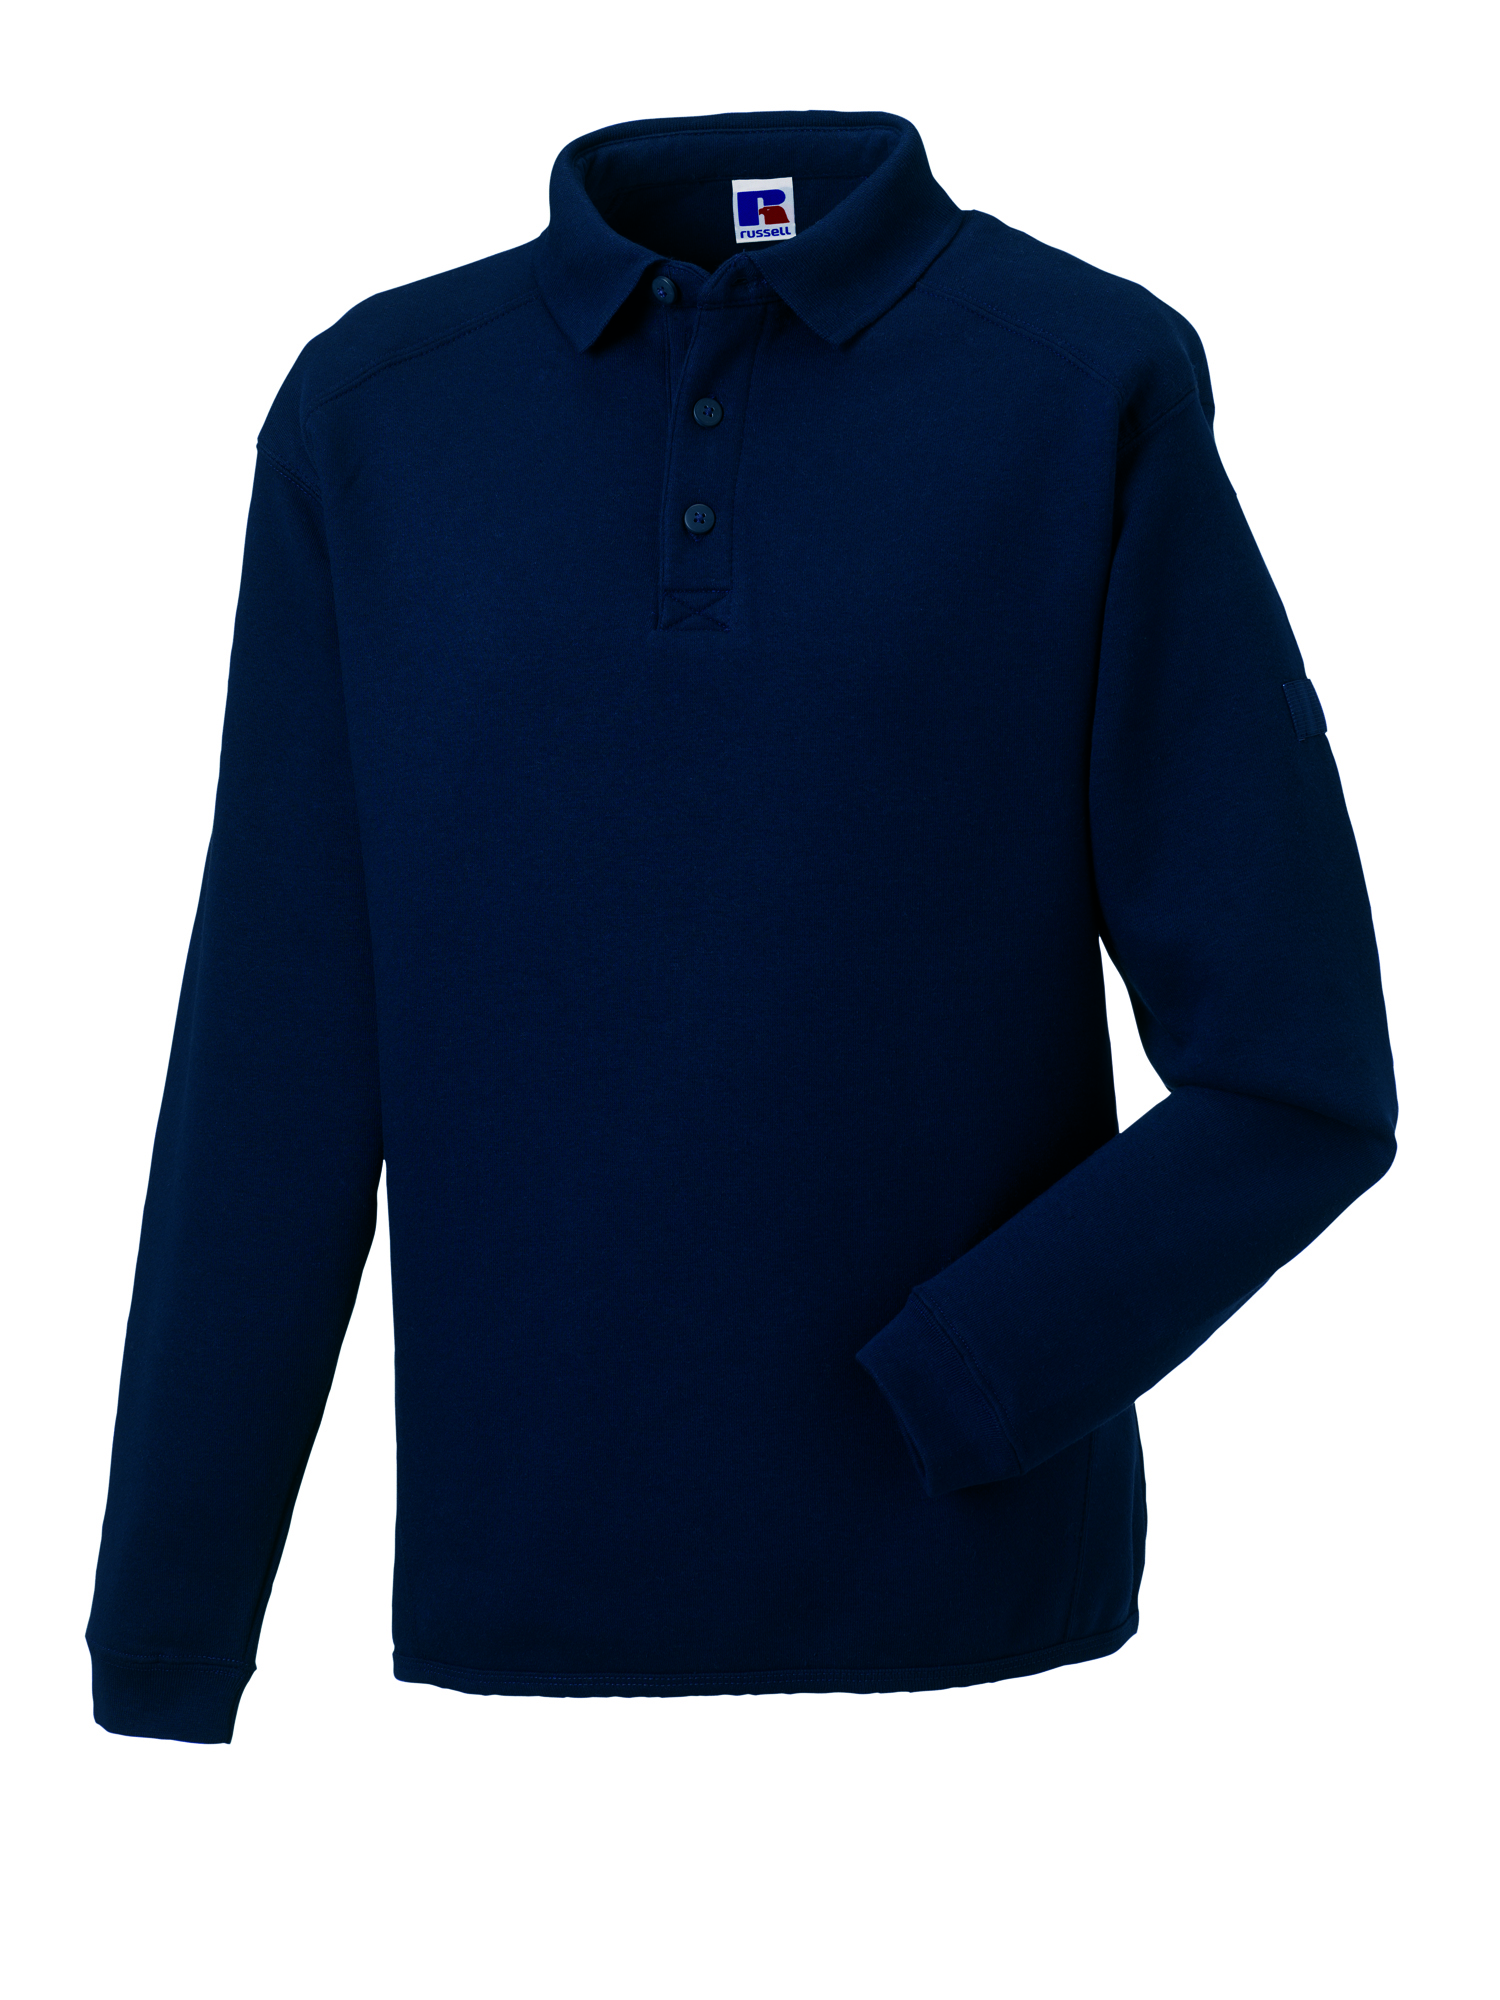 Heavy Duty Collar Sweatshirt - Light Oxford - XS